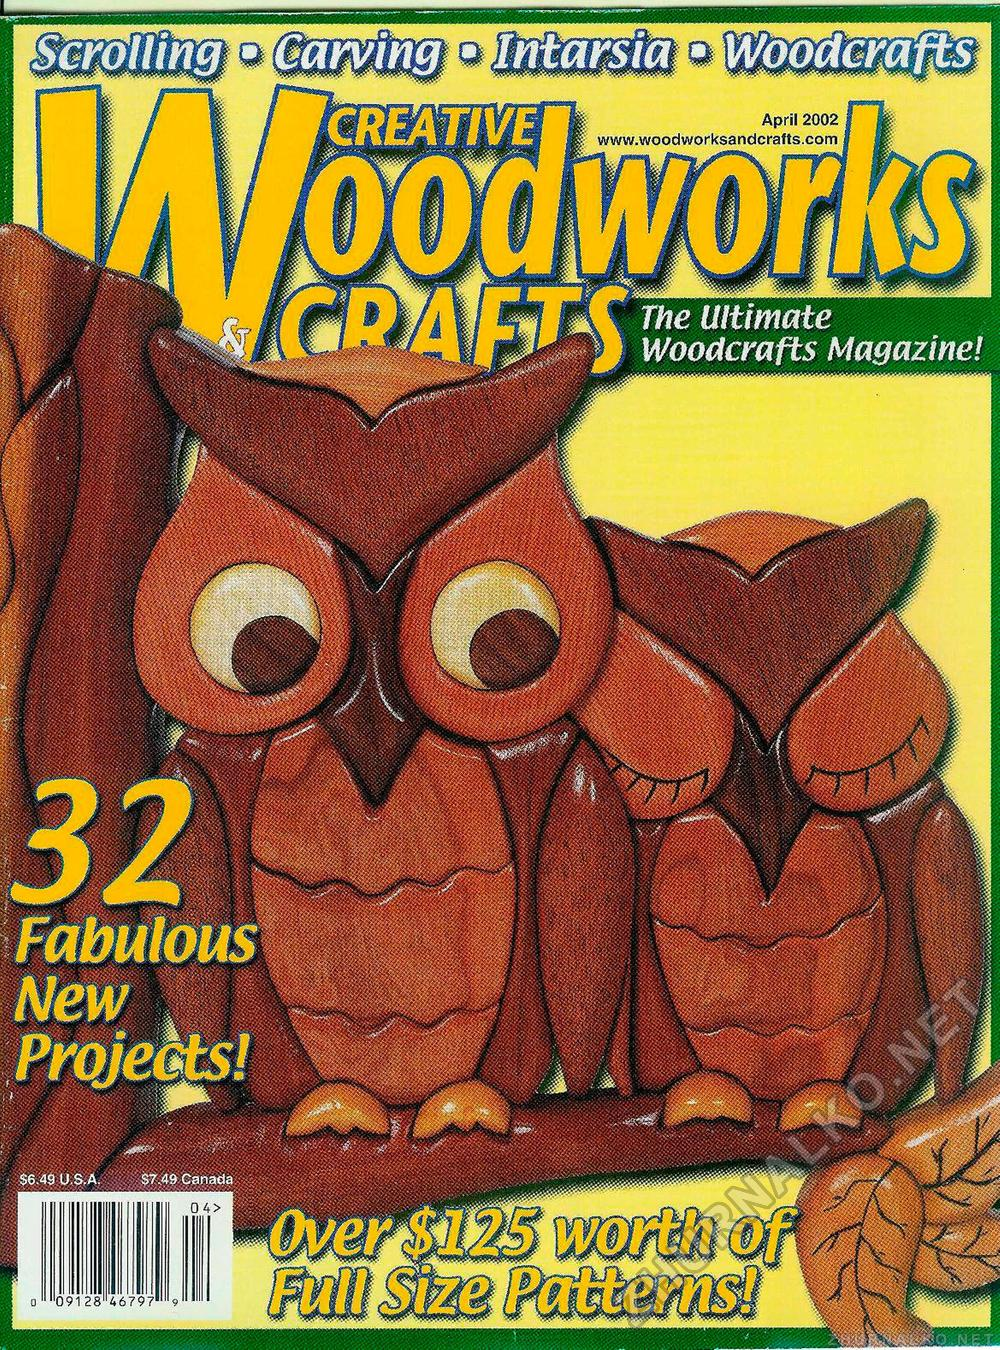 Creative Woodworks & crafts 2002-04, страница 1